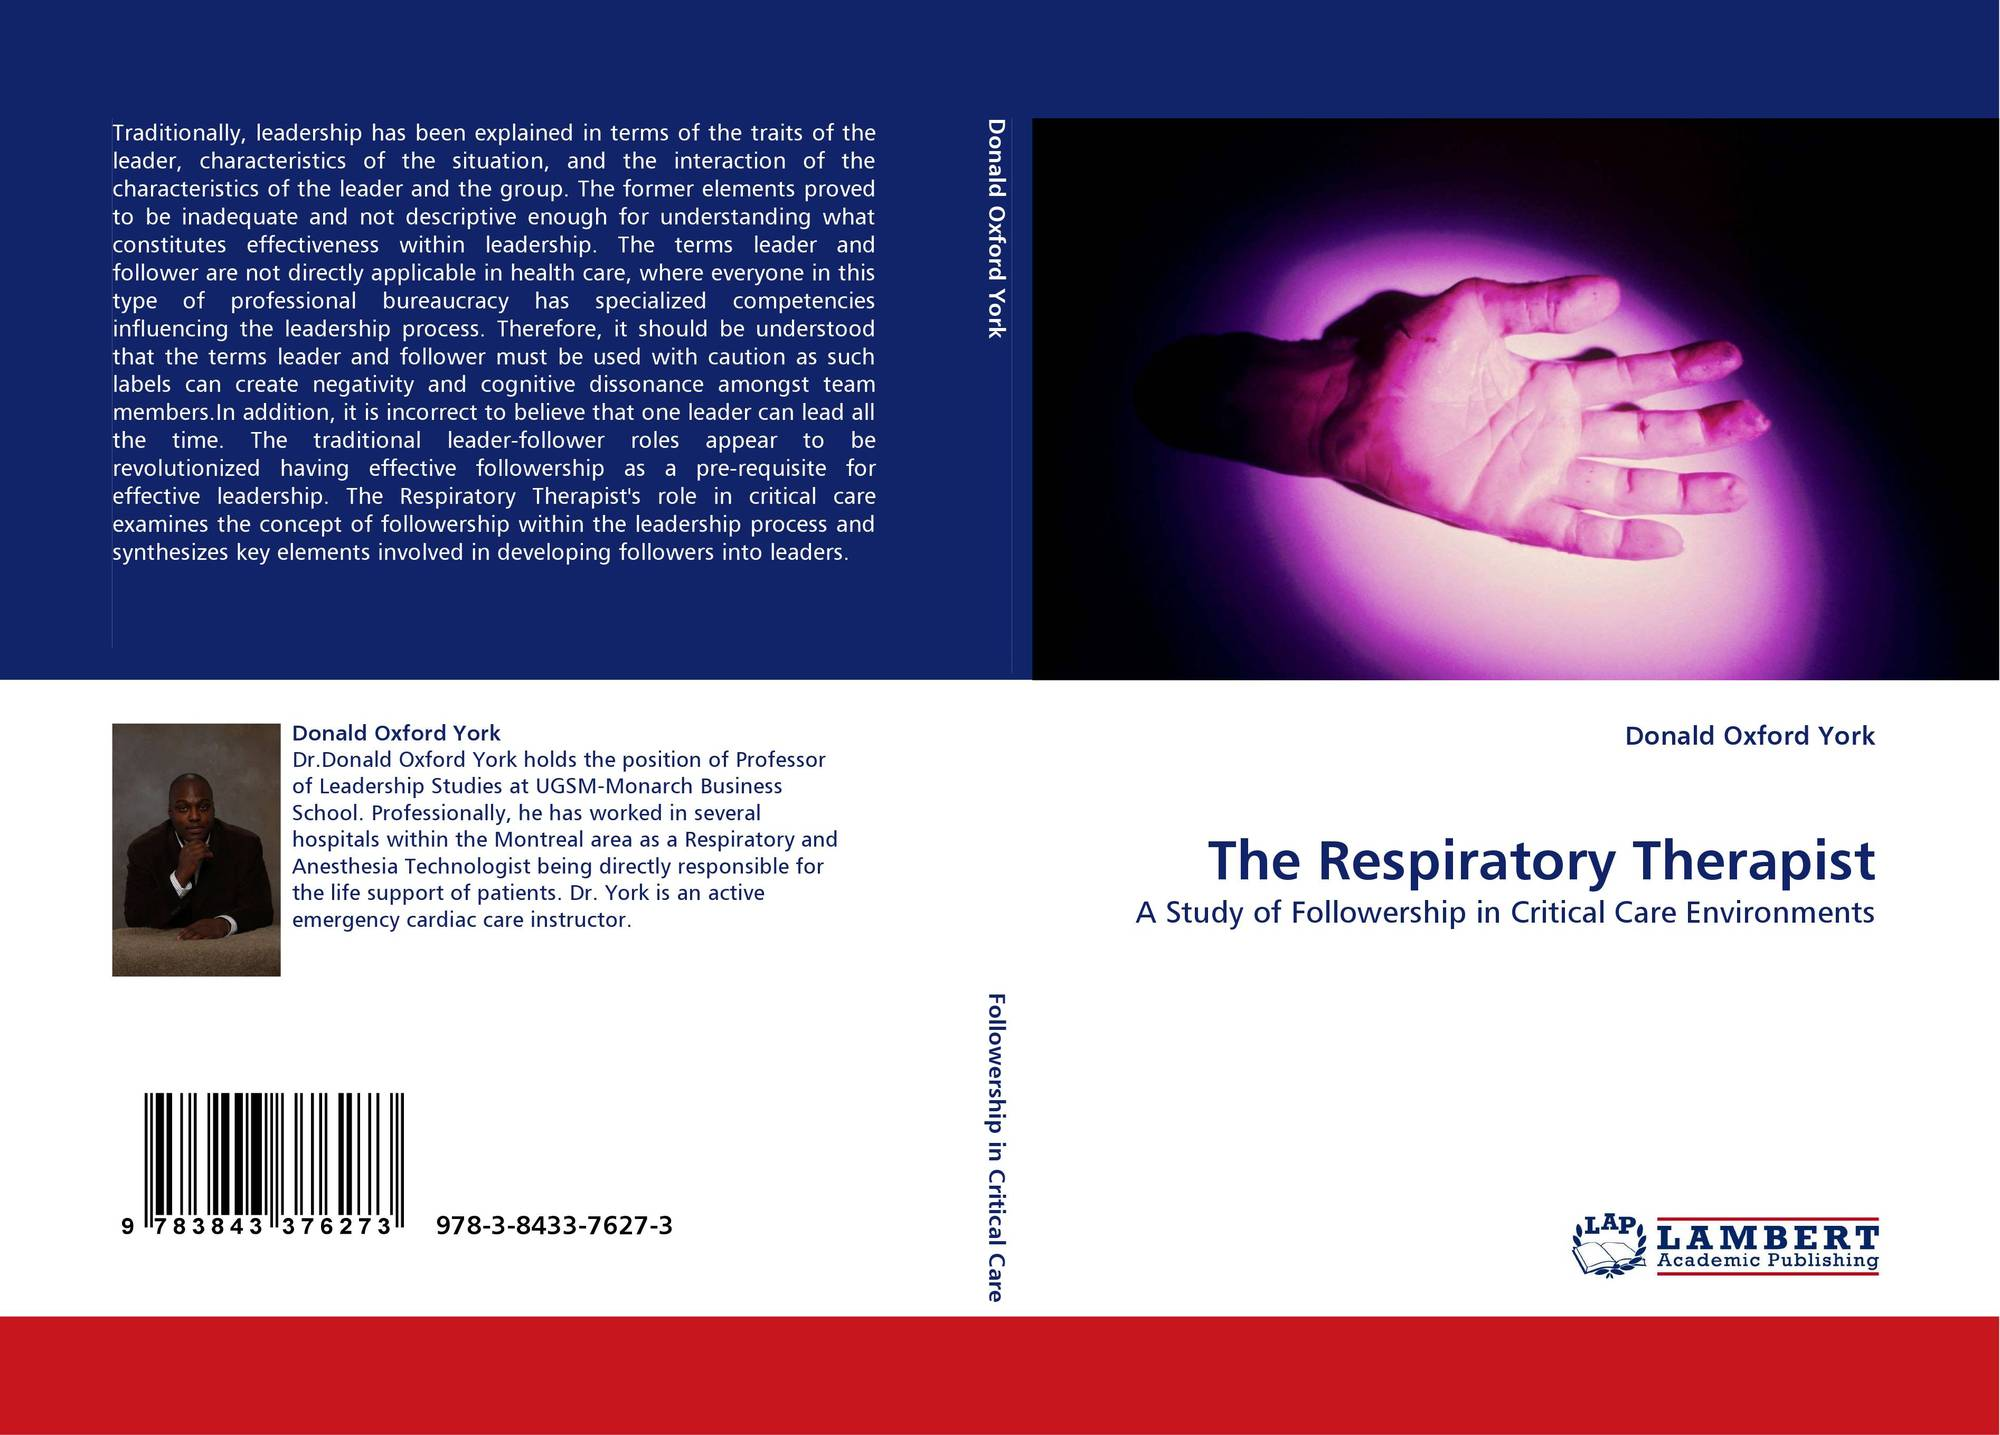 respiratory therapist research paper